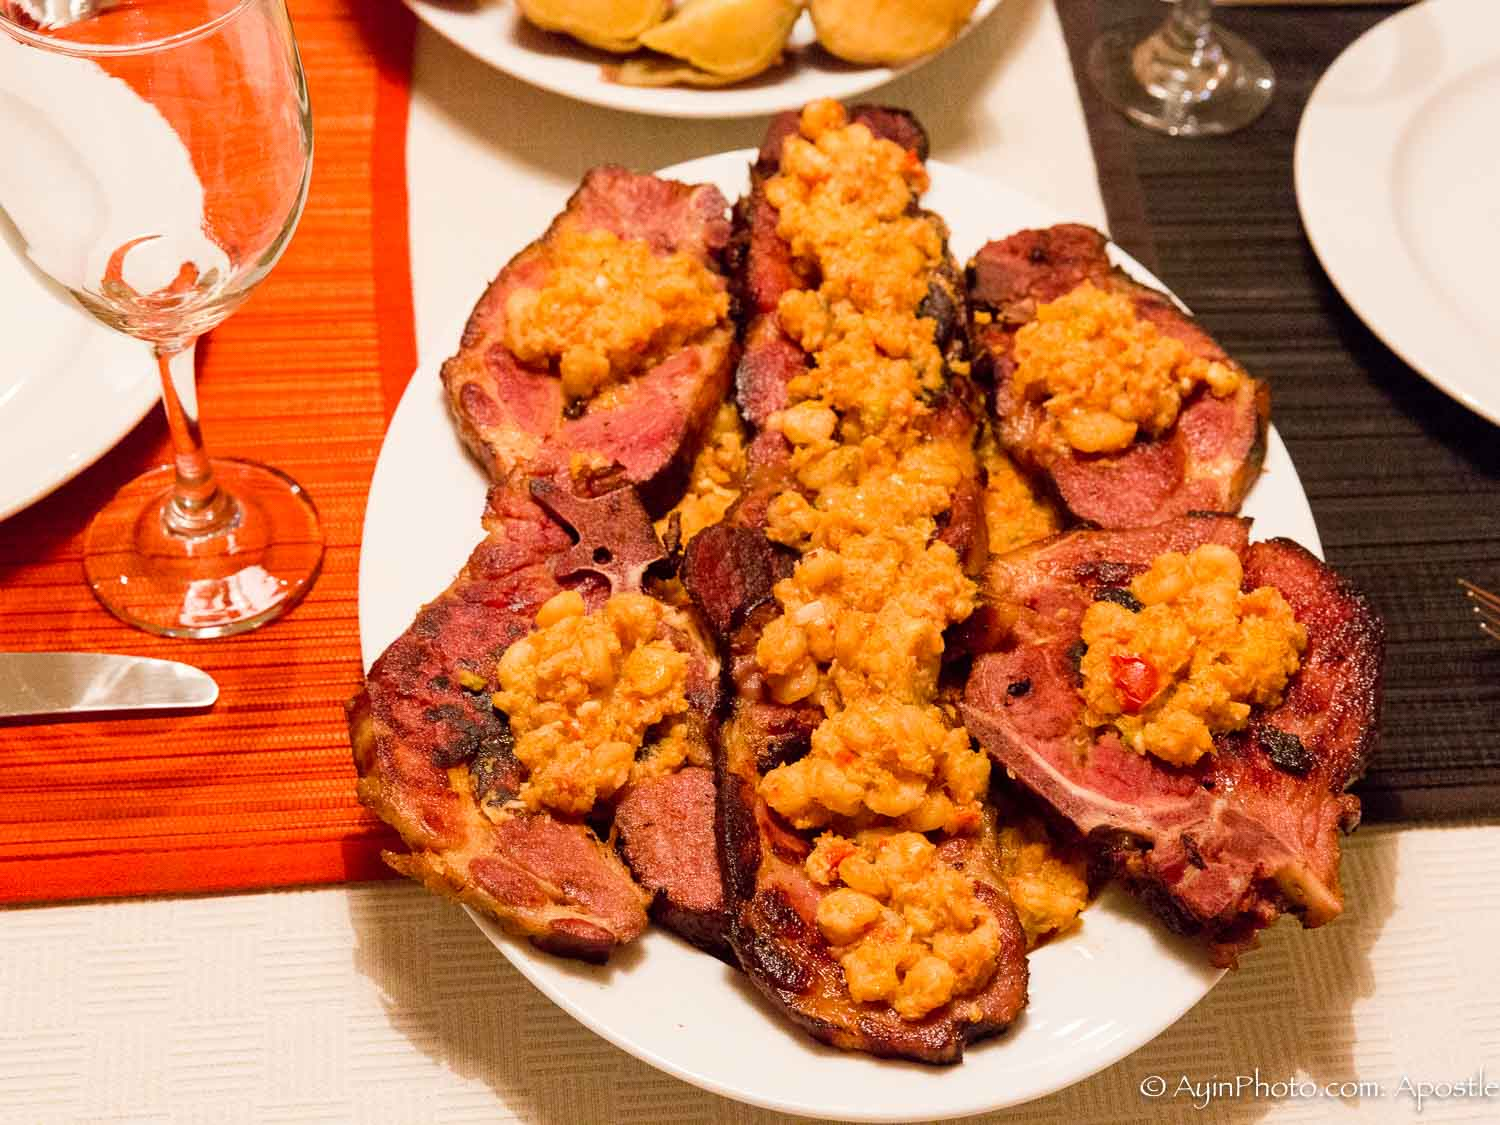 African - Gabon Pork Chops with Special Sauce